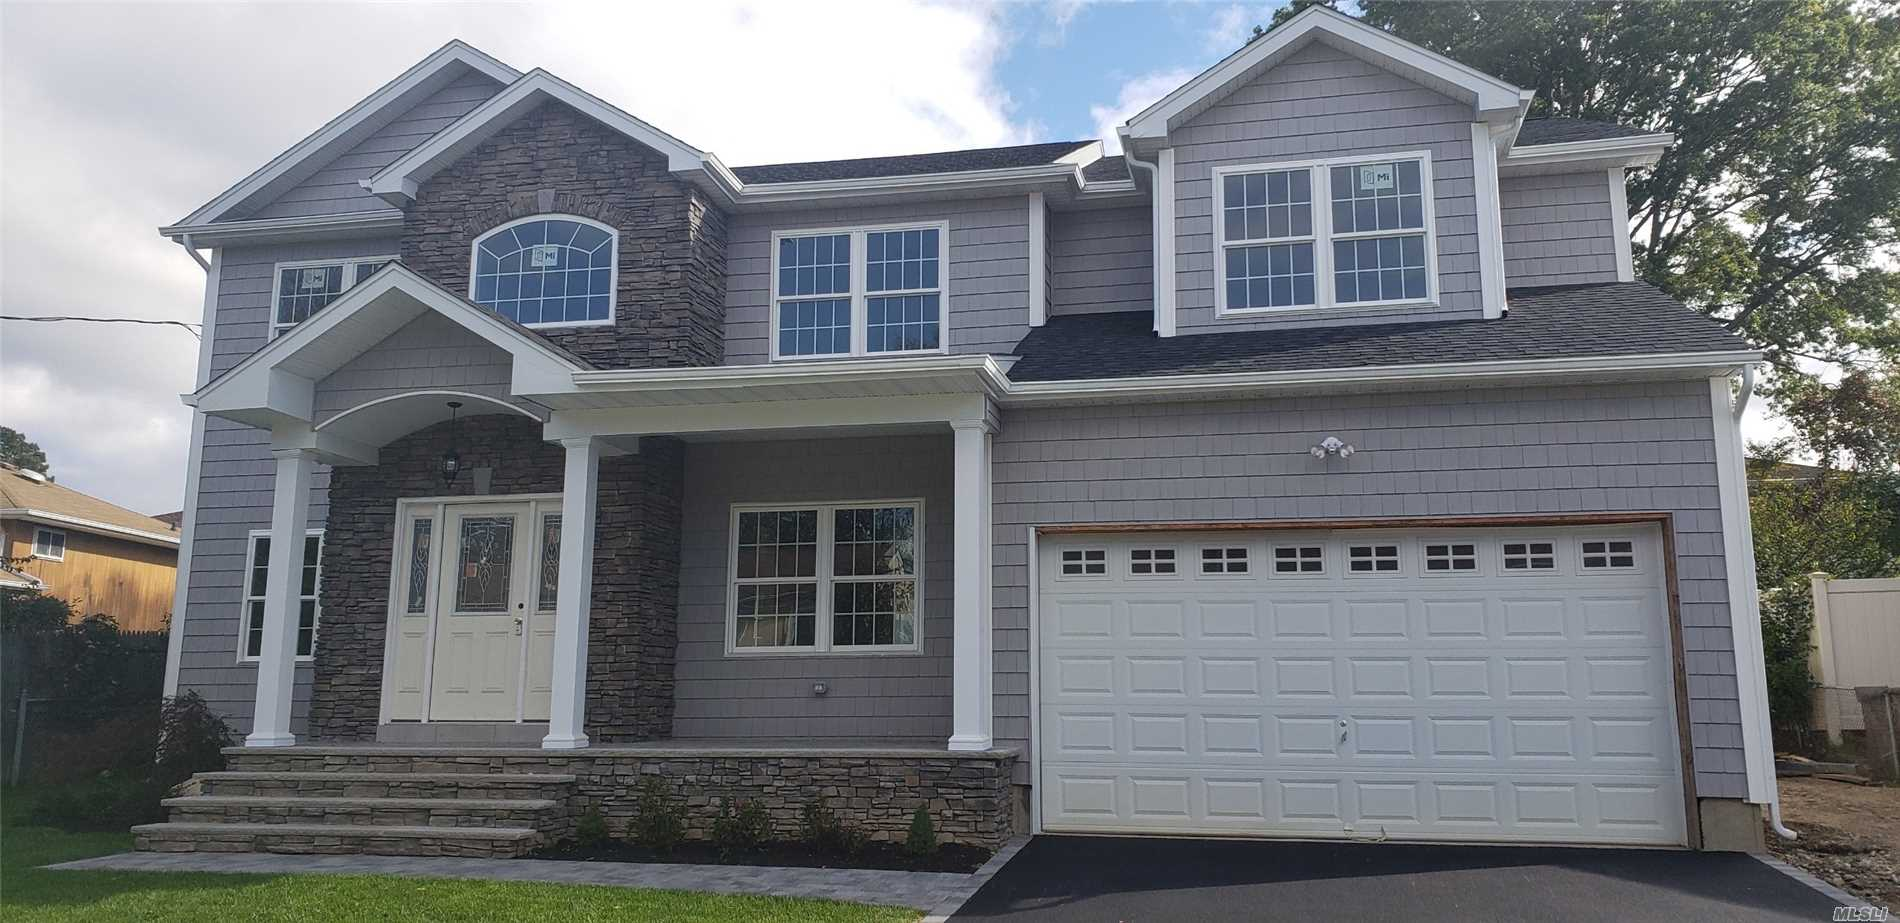 Priced To Sell Stunning New Construction, 5 Br's, 3 Baths, 2 Car Gar, Front Porch, Cac, Igs, Gourmet Eik, Grand Entry Foyer, Flr, Fdr, Bedroom/Office On 1st Flr, Laundry On 2nd Floor, Oversized Master Ensuite, Dual Wics, Hw Floors, Full Basement 8' Ceilings, Energy Star Rated!! Village Elementary, Close To Rr, Shopping Near Oyster Bay Beaches!~ Interior Photos Shown Are Not An Exact Model Of The House